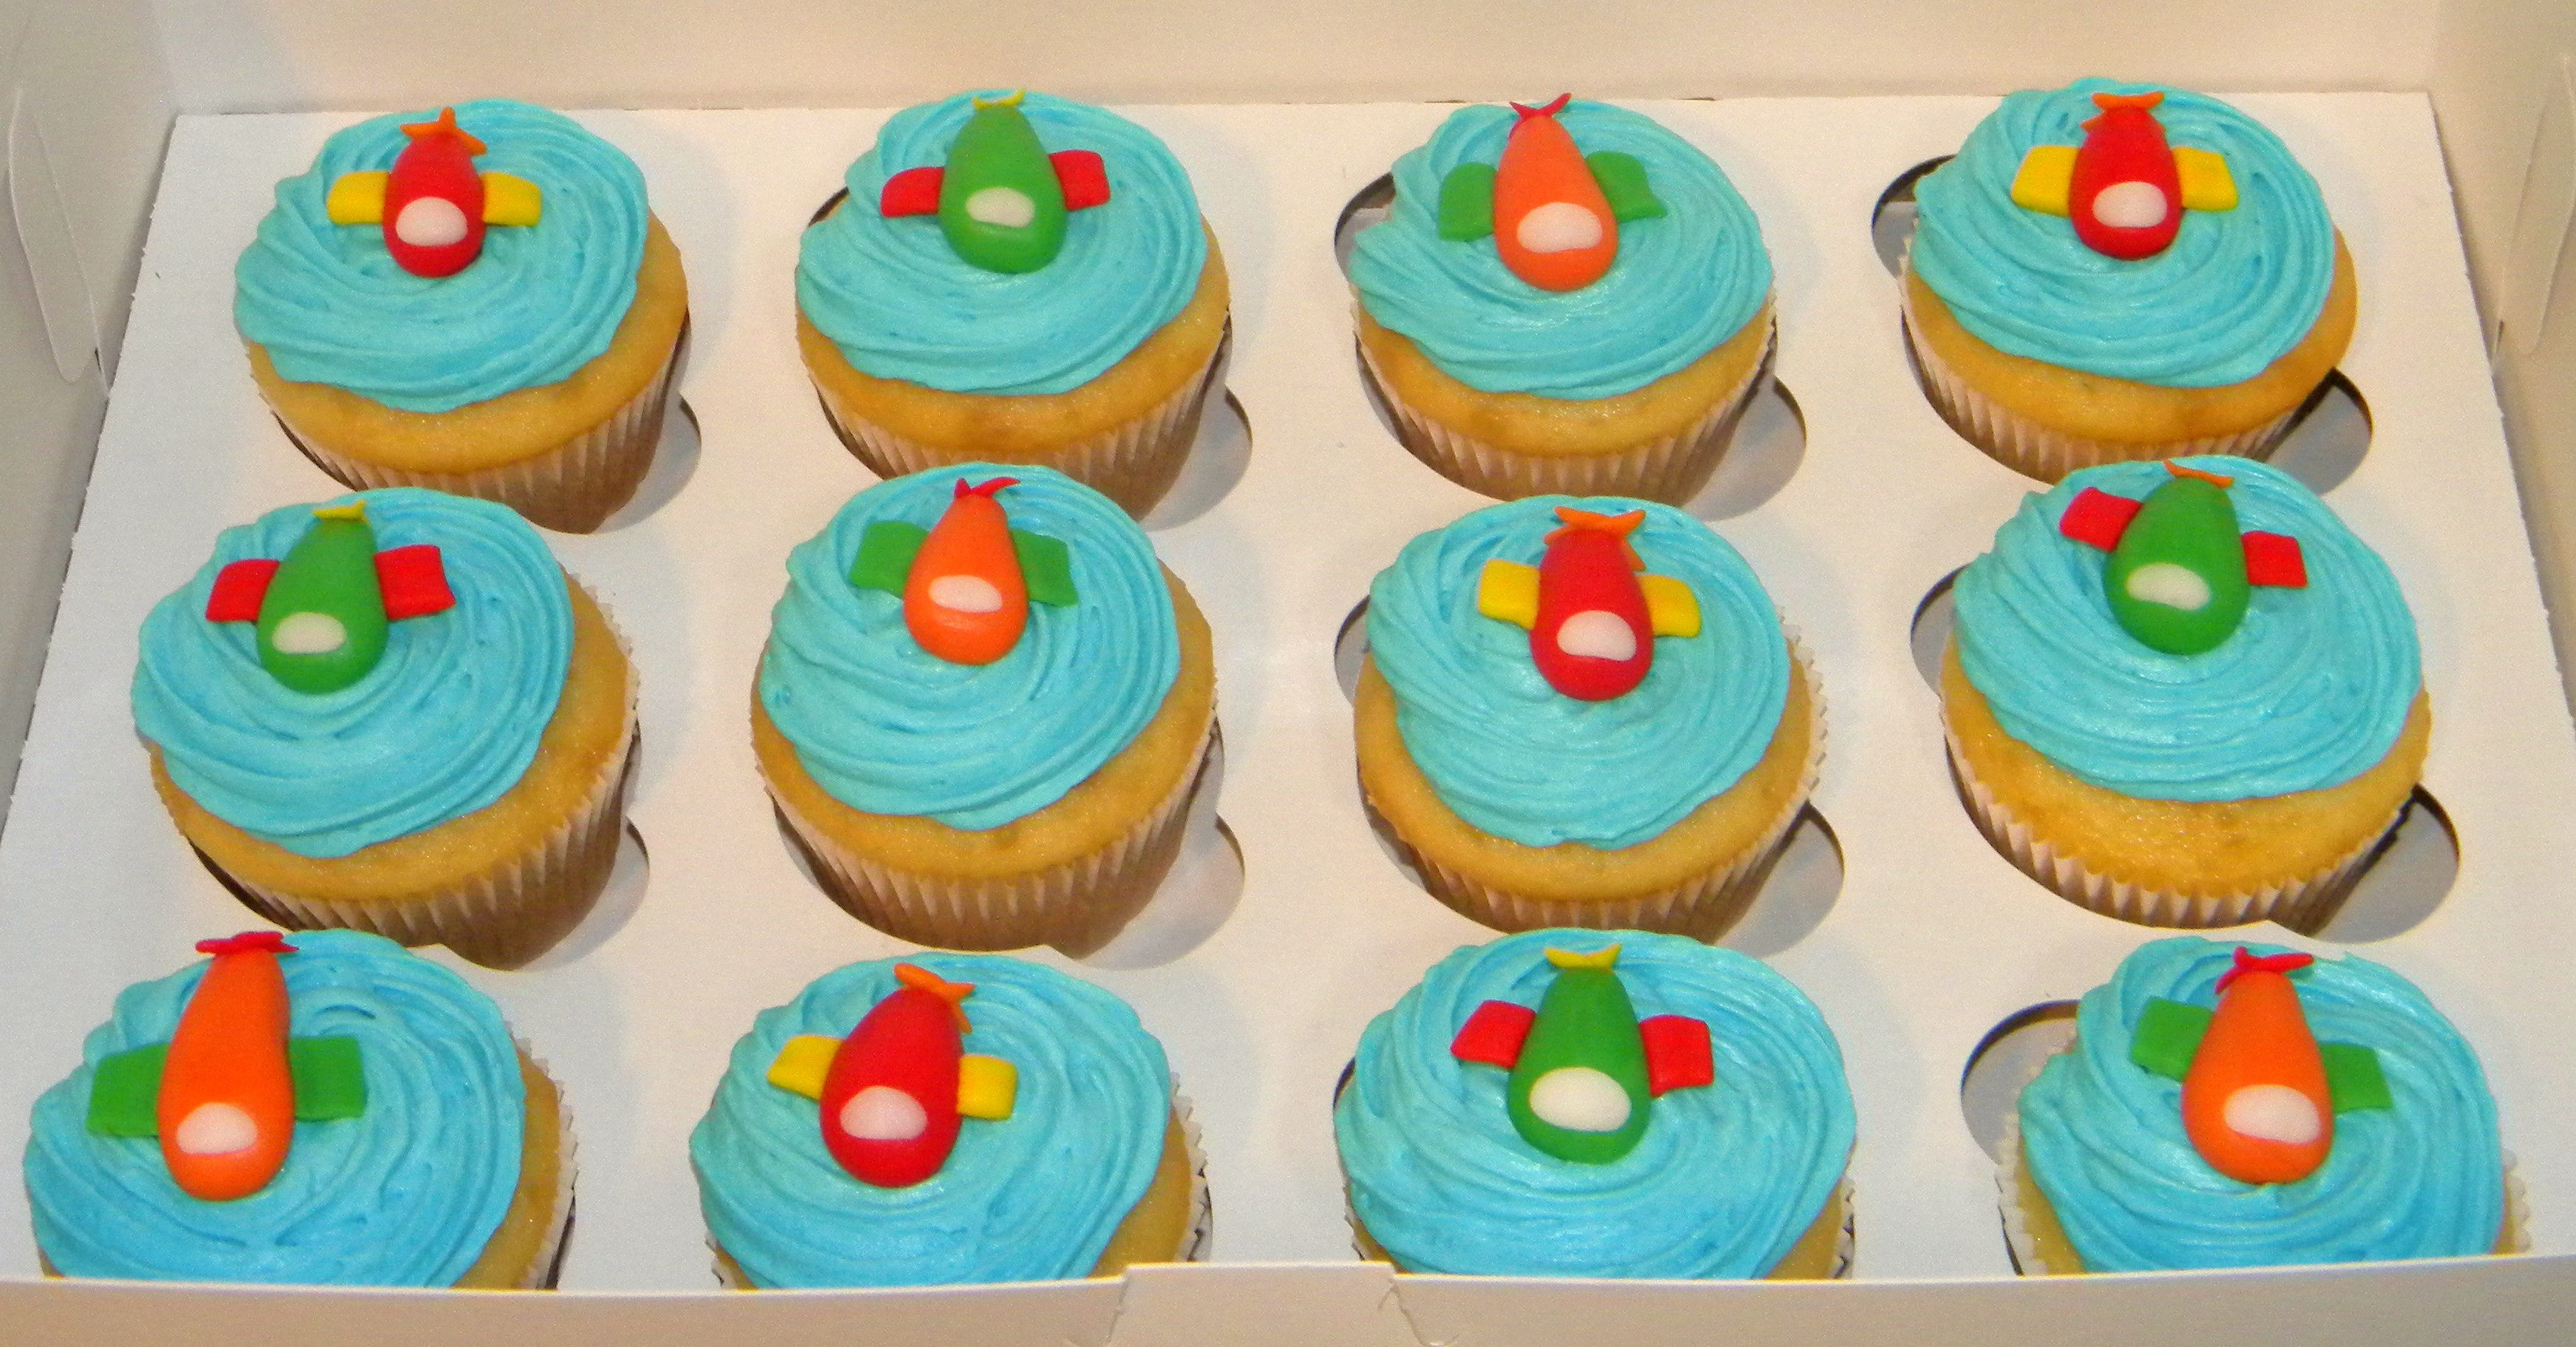 Images Of Birthday Cakes For 8 Year Old Boy : Birthday Cake For A 8 Year Old Boy Cake Is Vanilla With ...